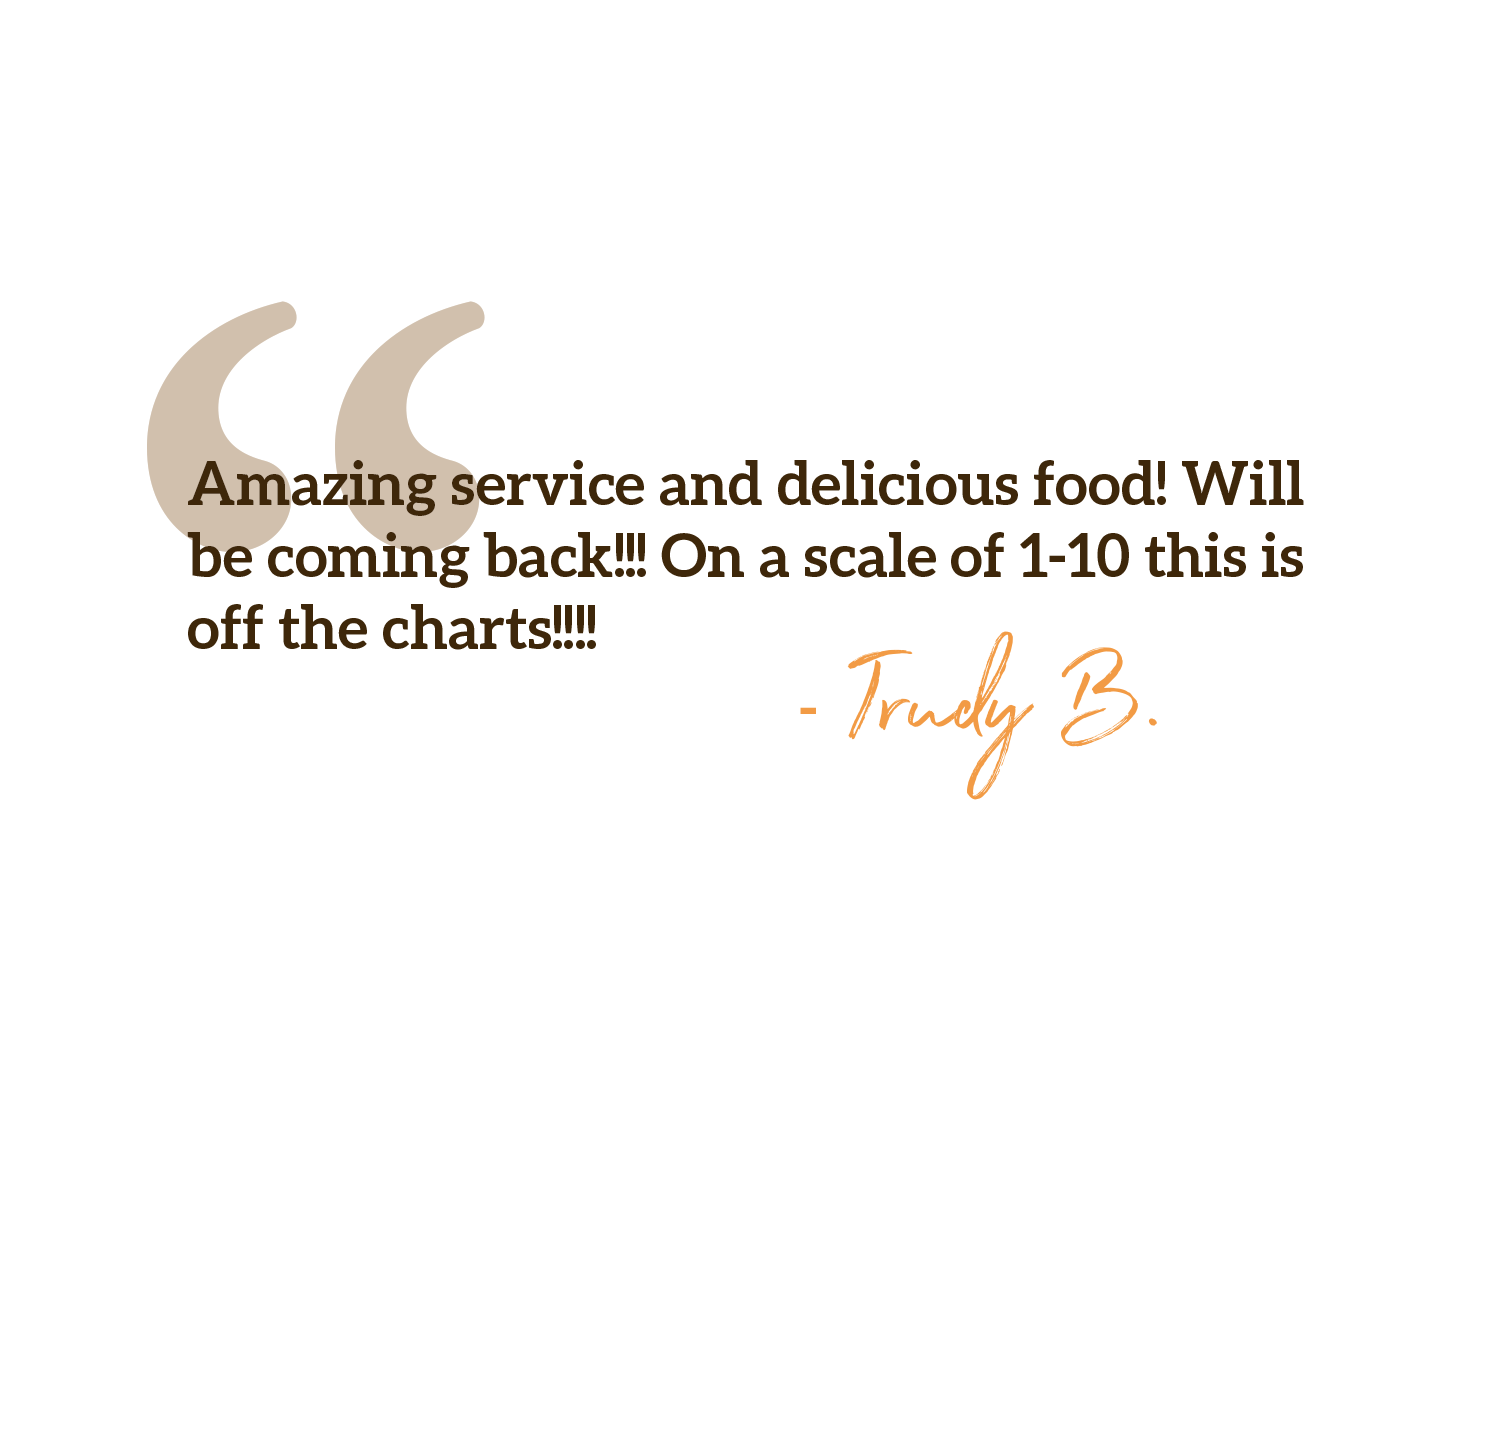 quote-2.png